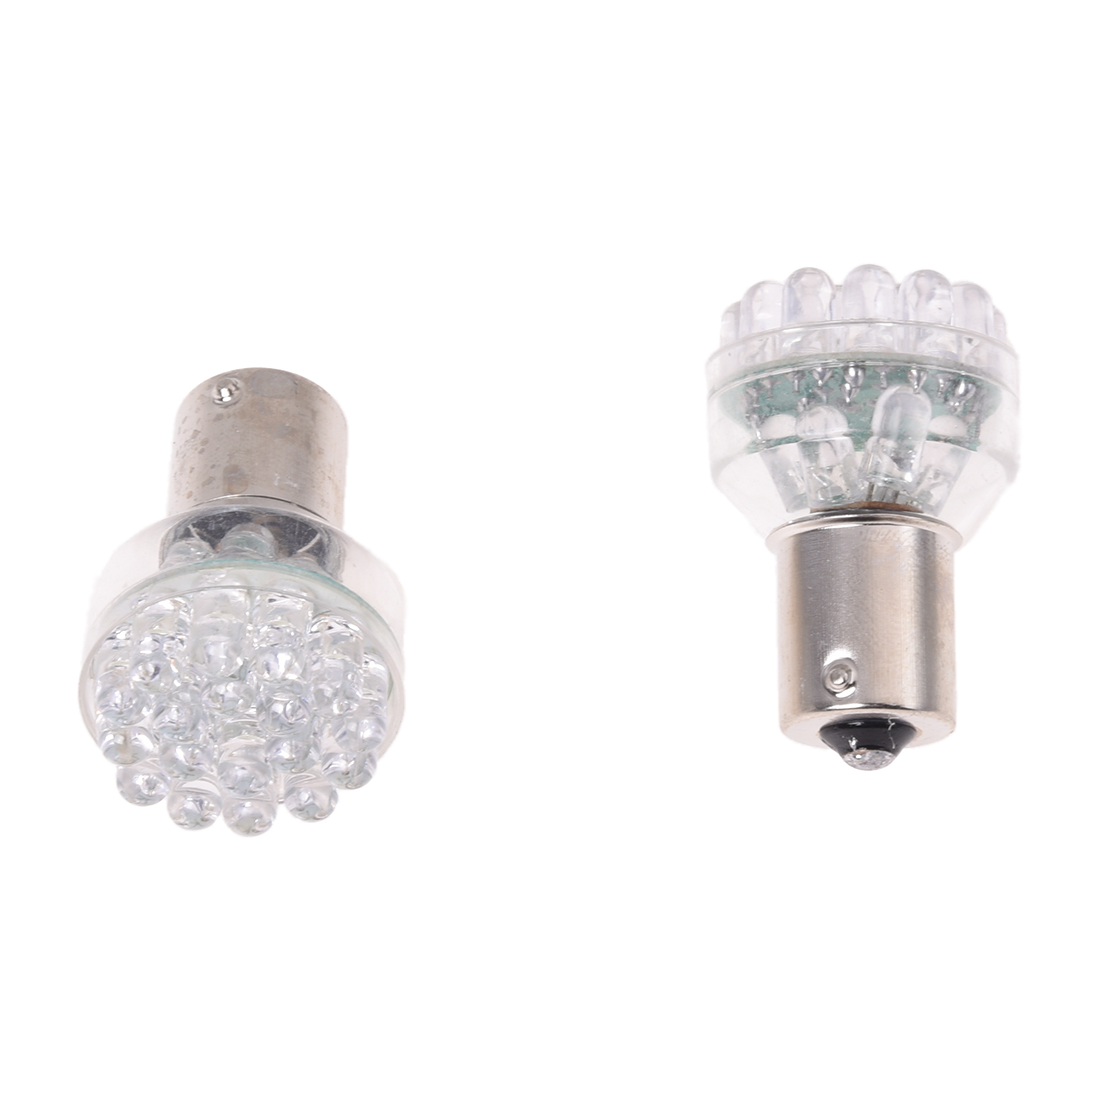 2 X 1156 24 LED Bulb Lamp Light Faro Flashing Signal Car White